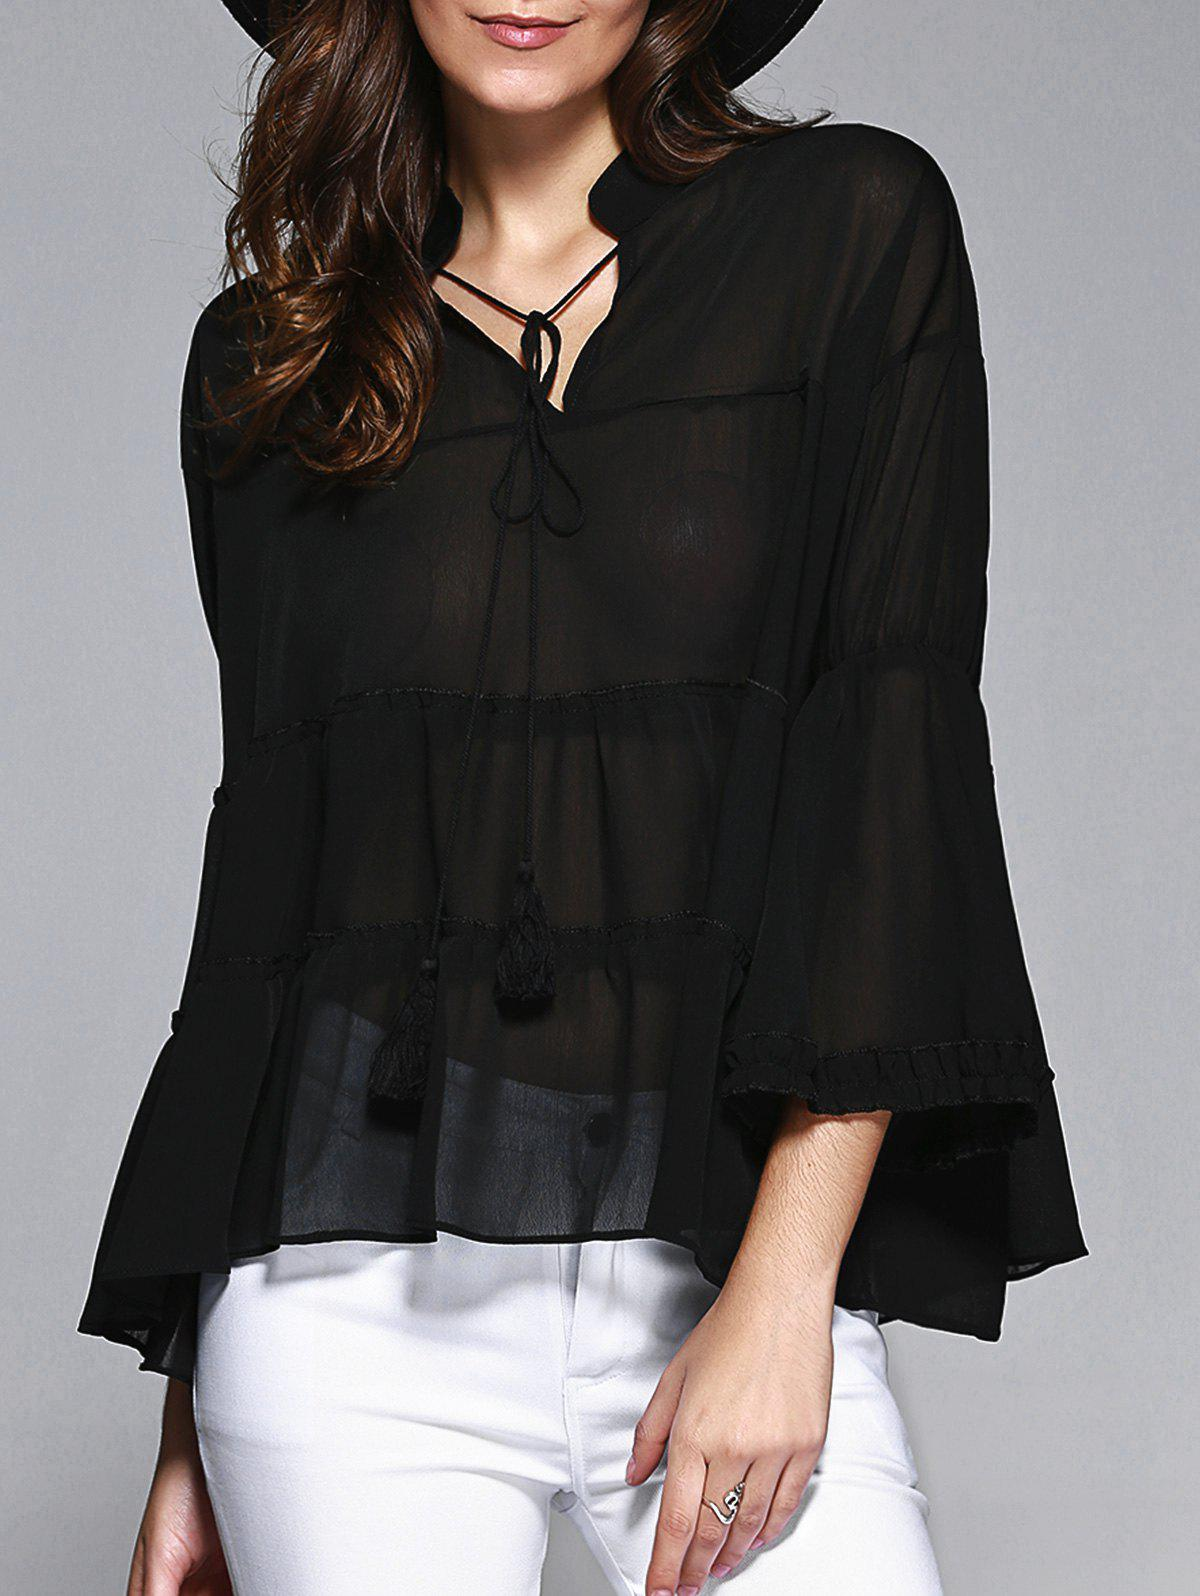 Sweet Women's Plus Size Bell Sleeves Flounced Blouse - BLACK 4XL